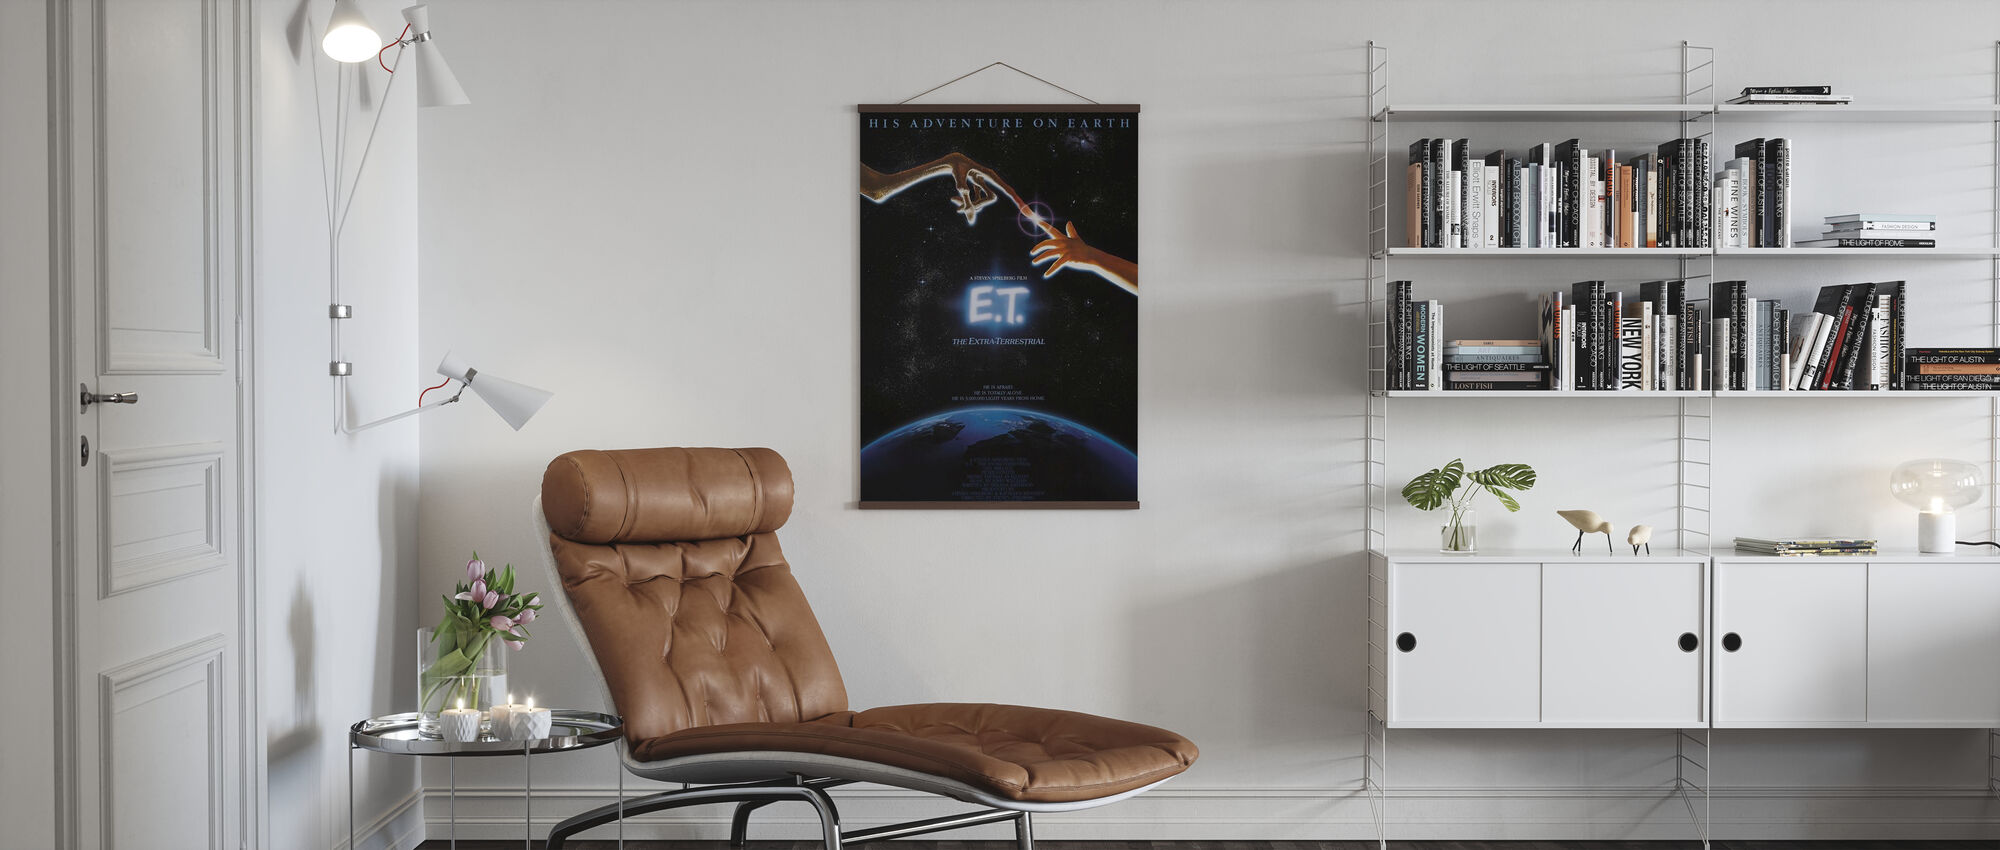 E T The Extraterrestrial - Poster - Living Room